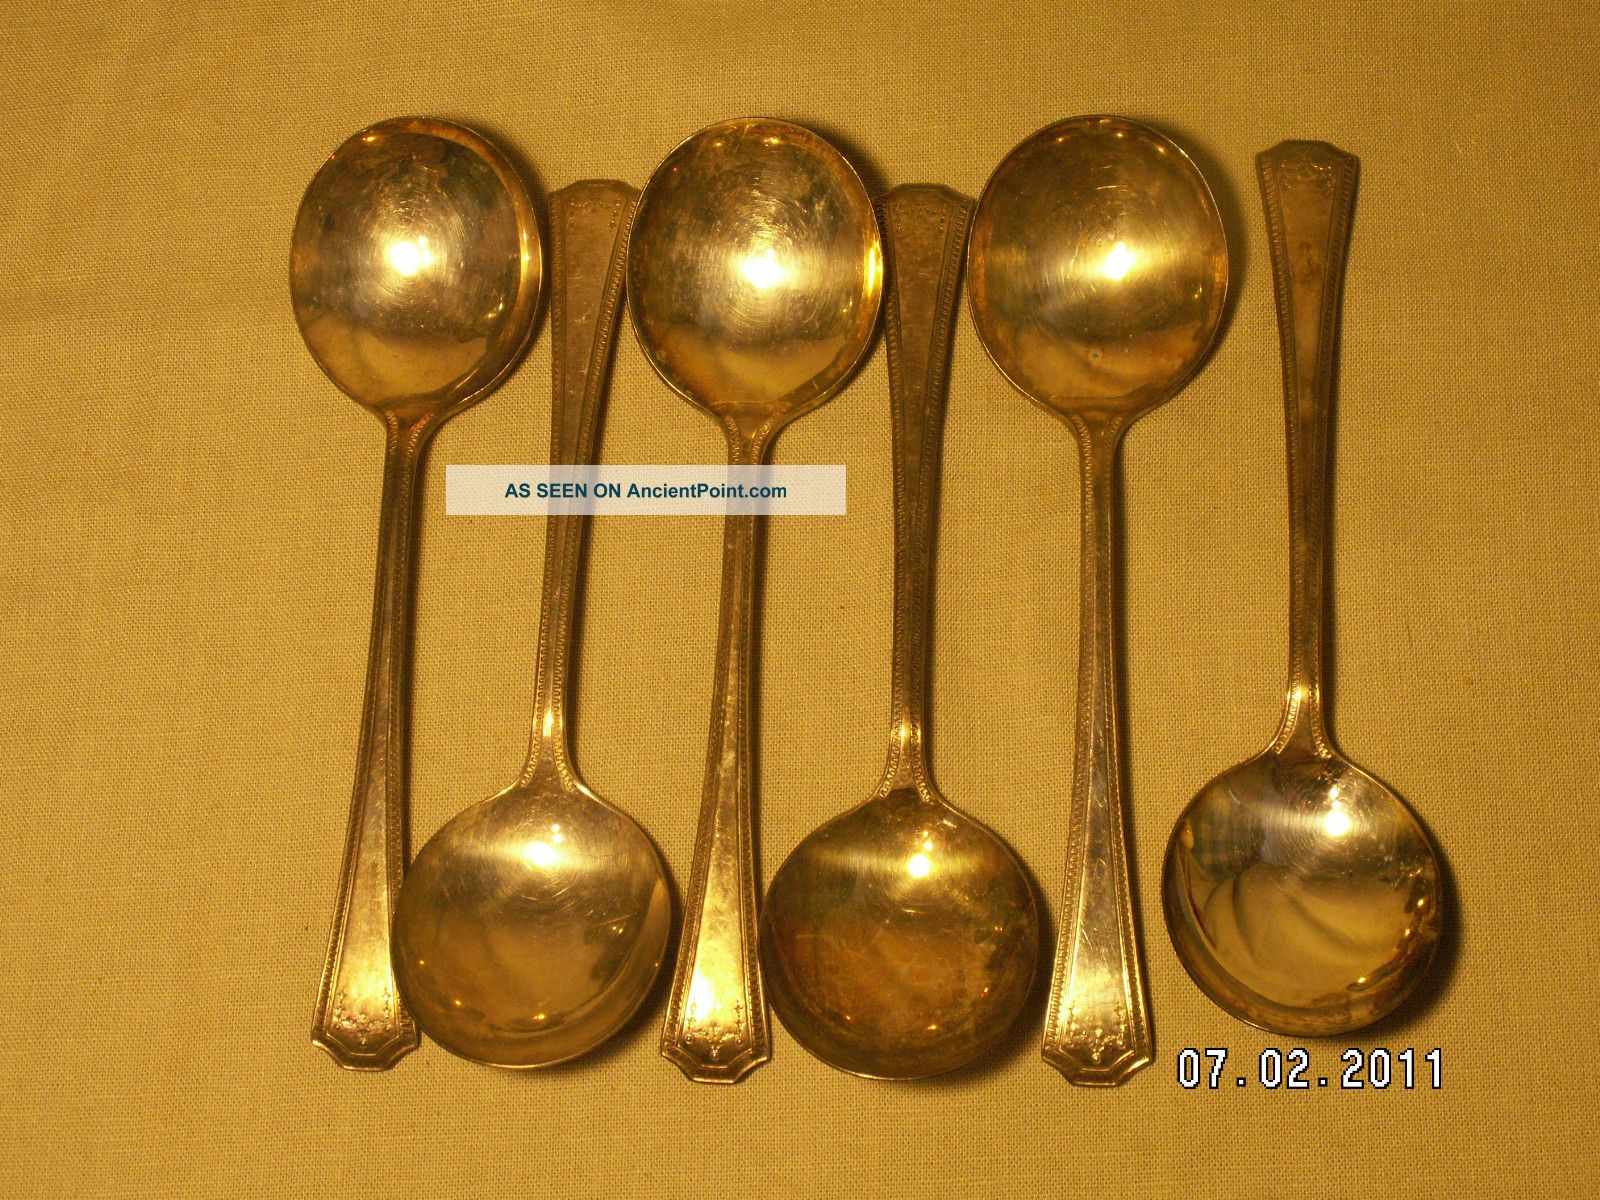 Epns Nsc Silver Spoon Fork Set Of 9 National Silver Company Vintage National photo